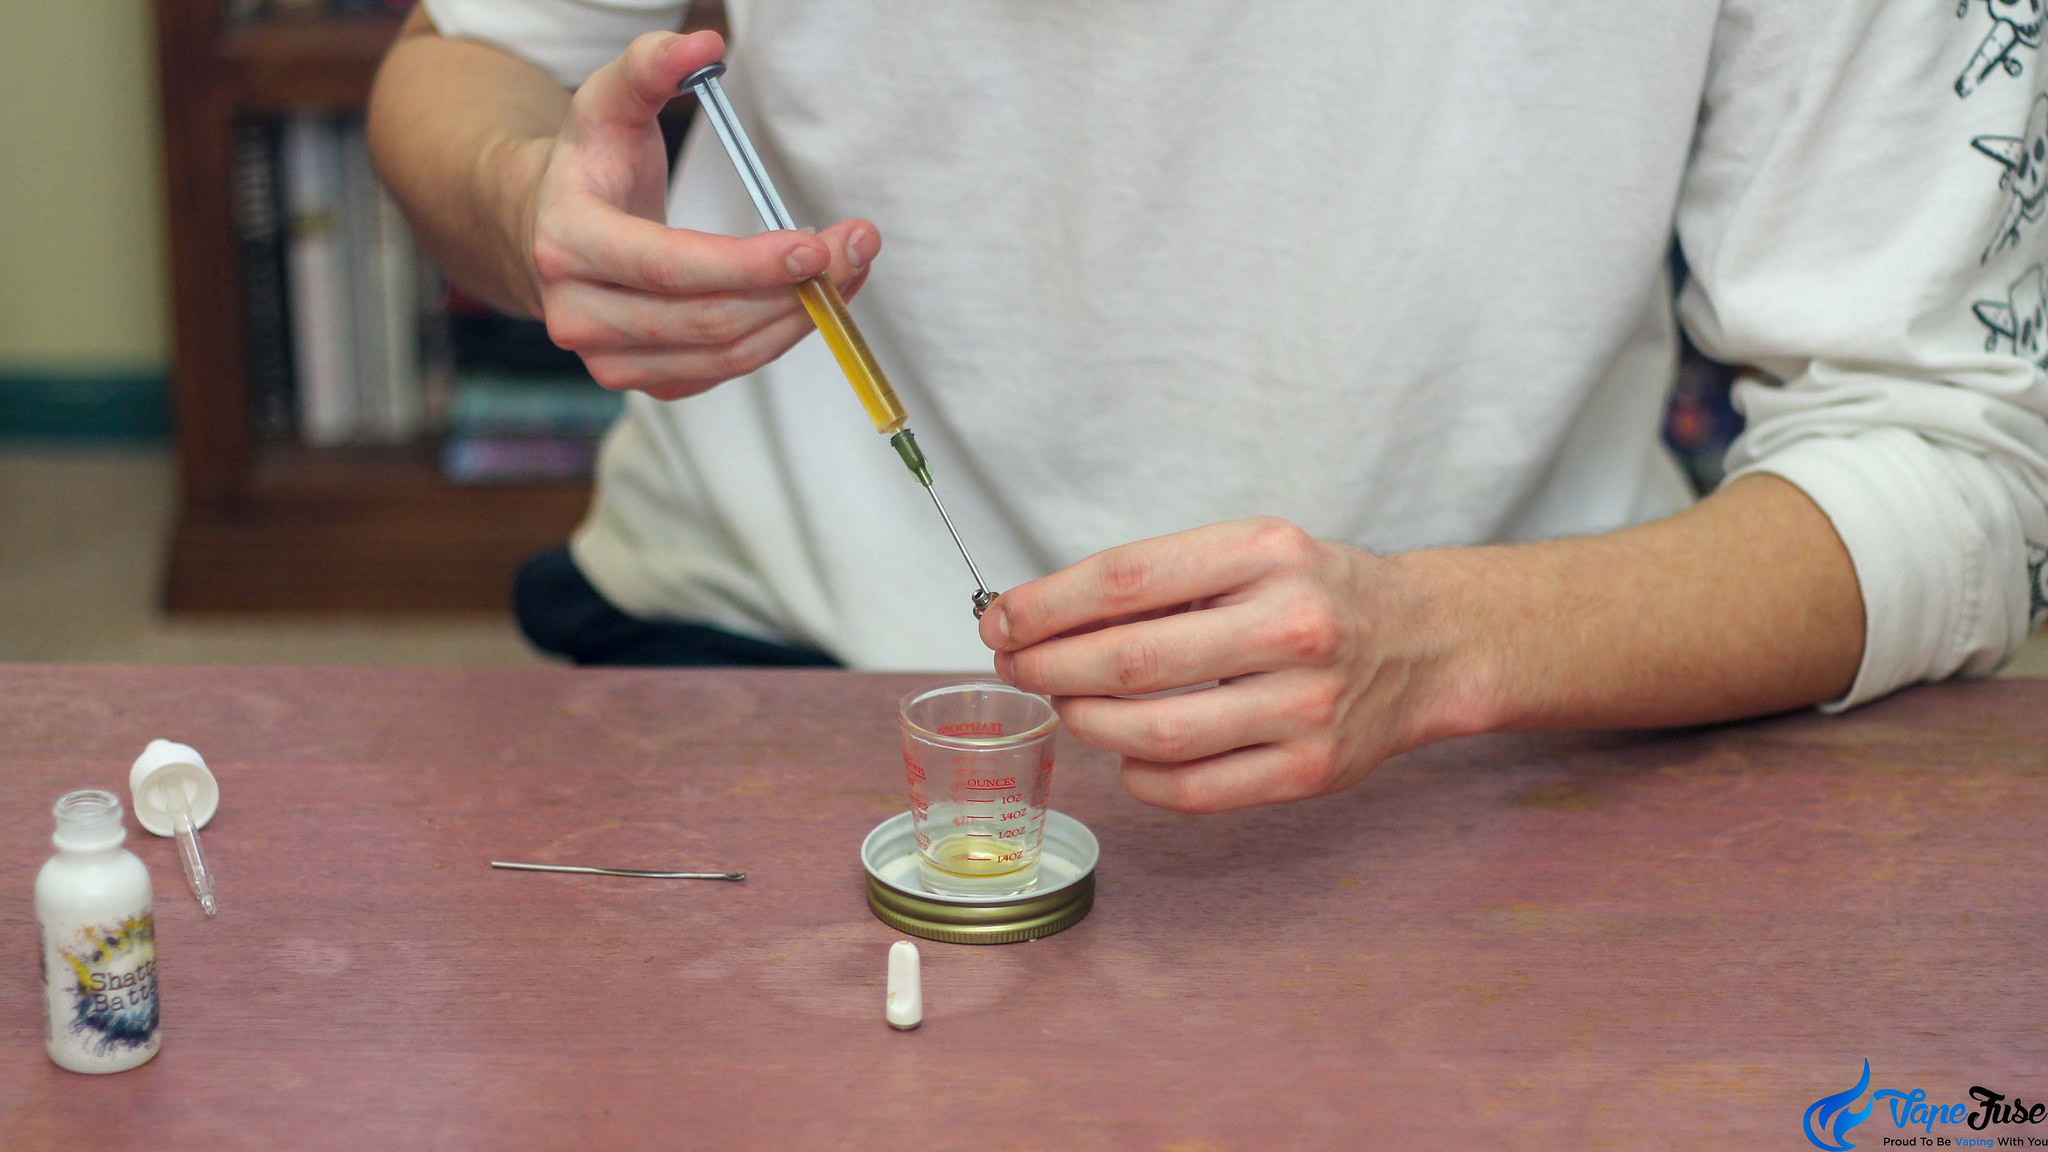 Filling up THC Oil Cartridge